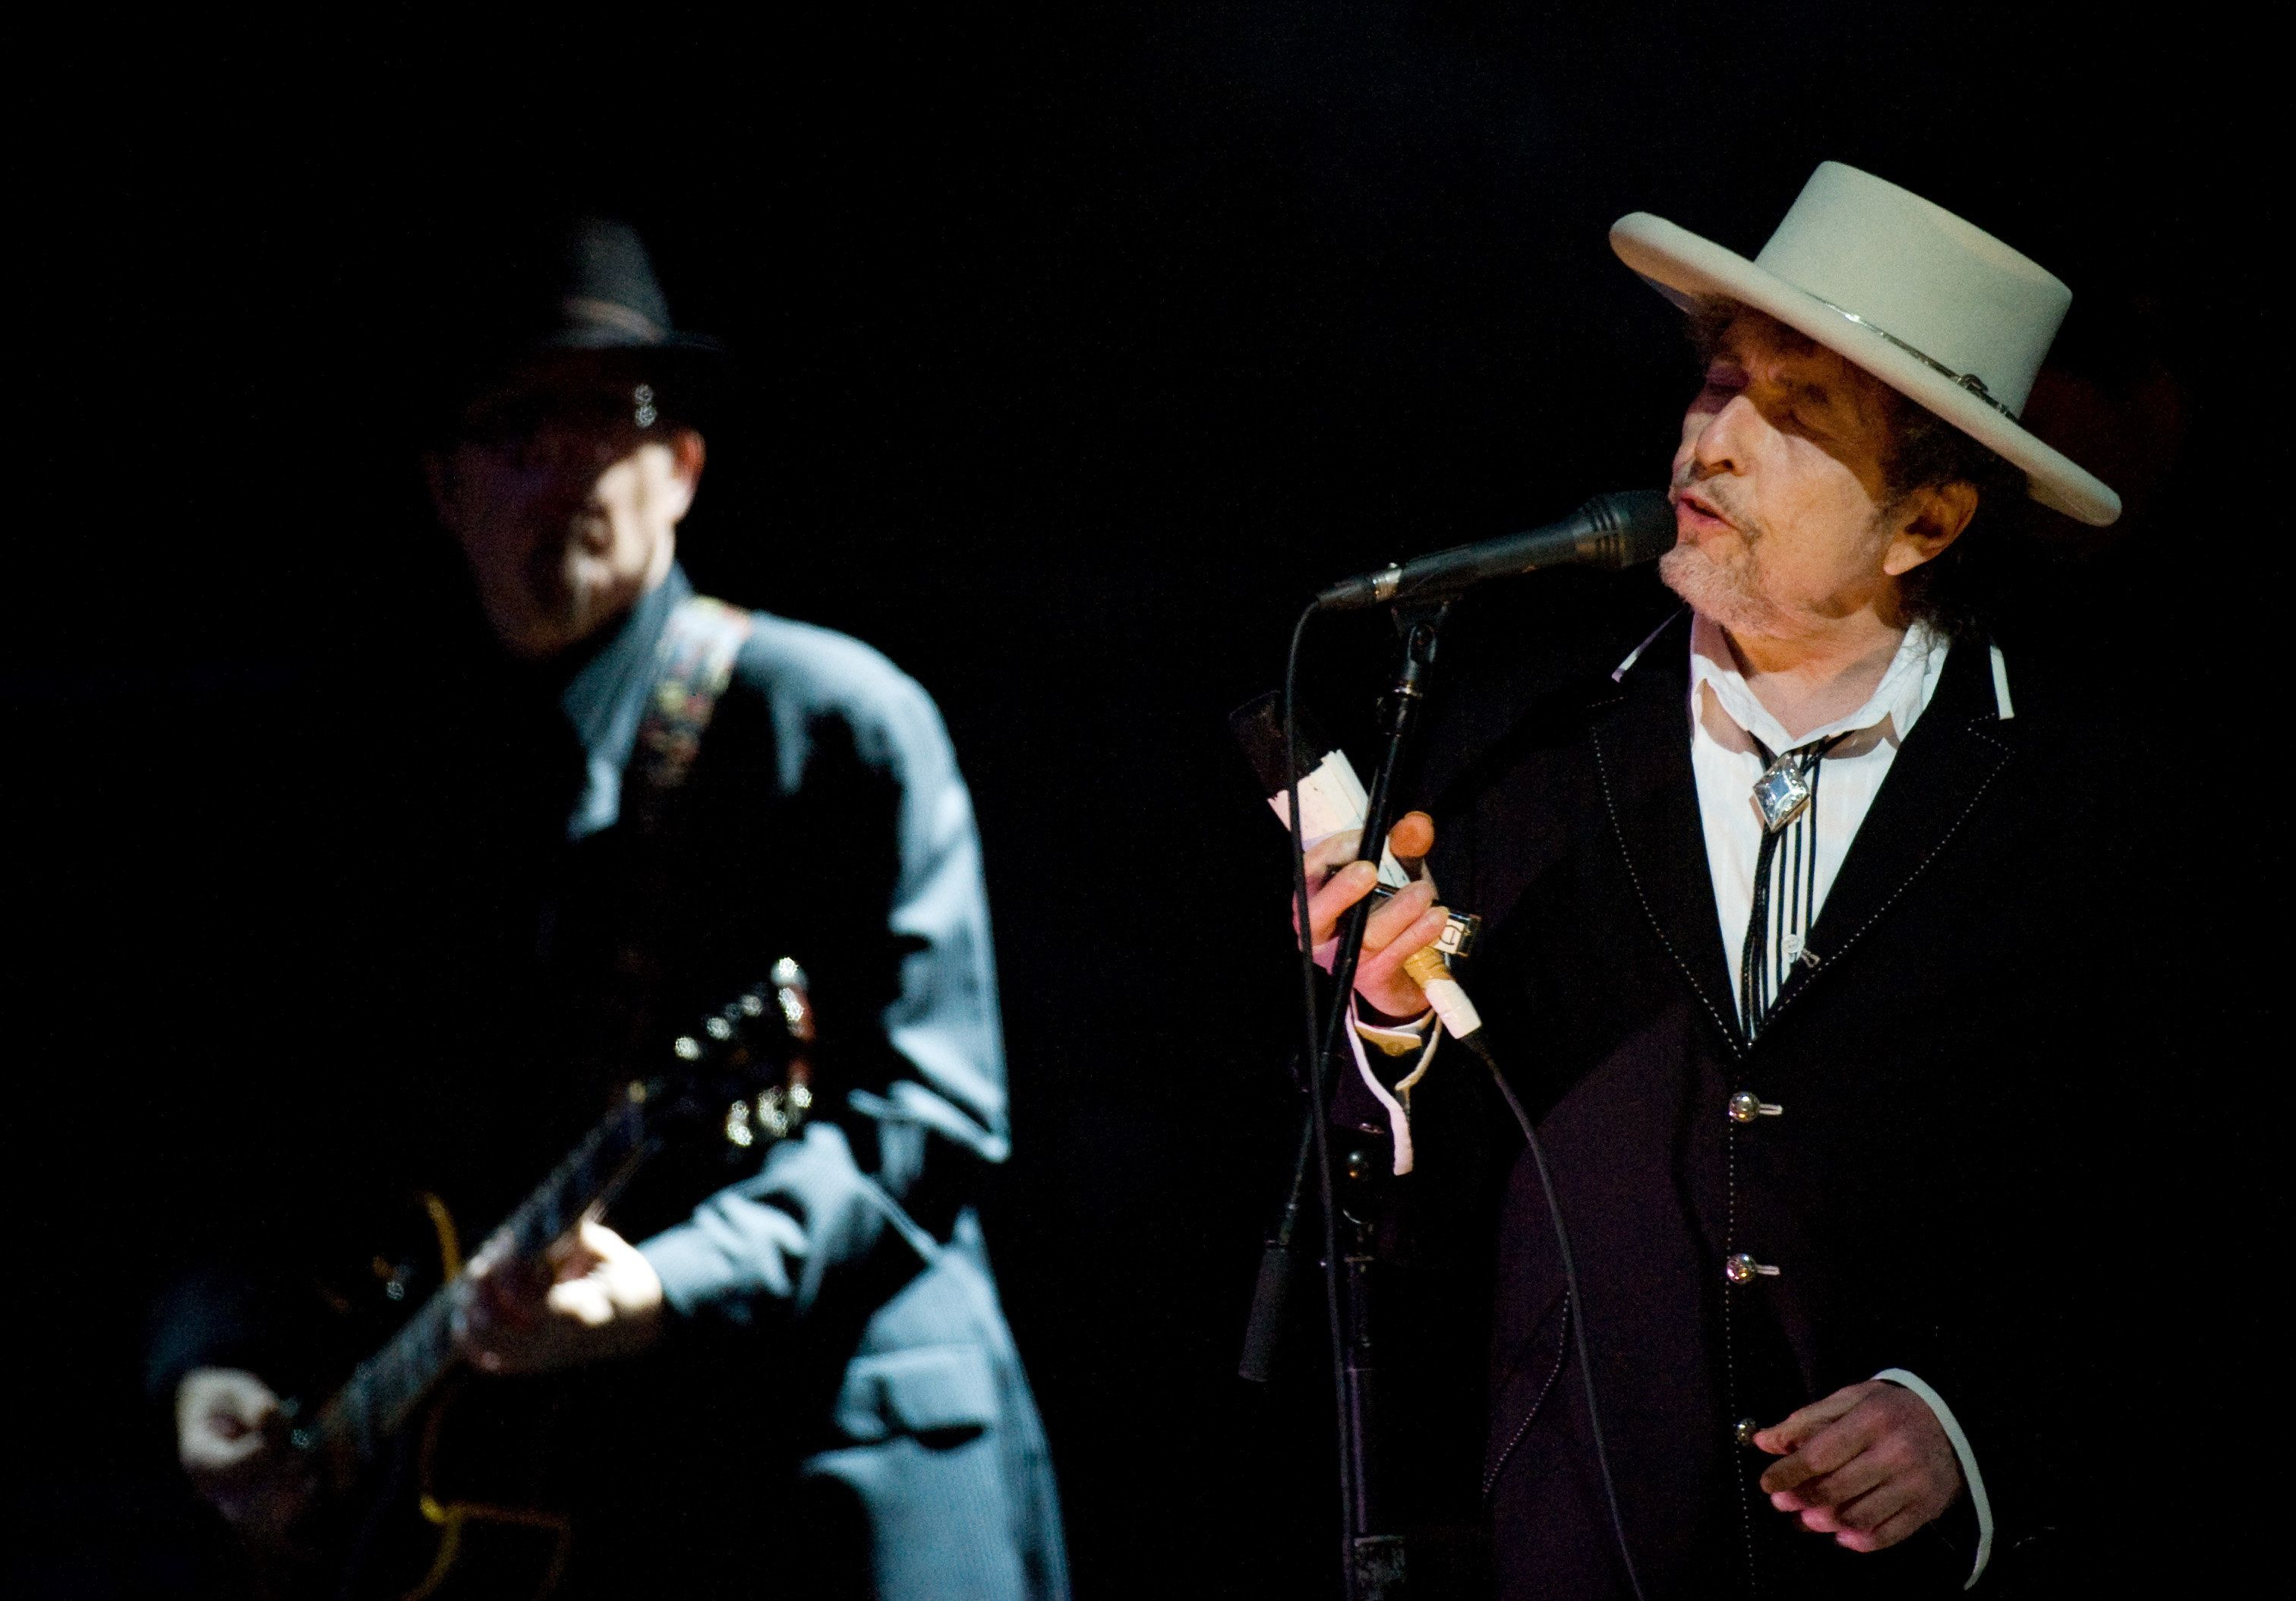 LONDON - JUNE 18: Bob Dylan headlines the Feis Festival in Finsbury Park on June 18, 2011 in London, England. (Photo by Samir Hussein/Getty Images)